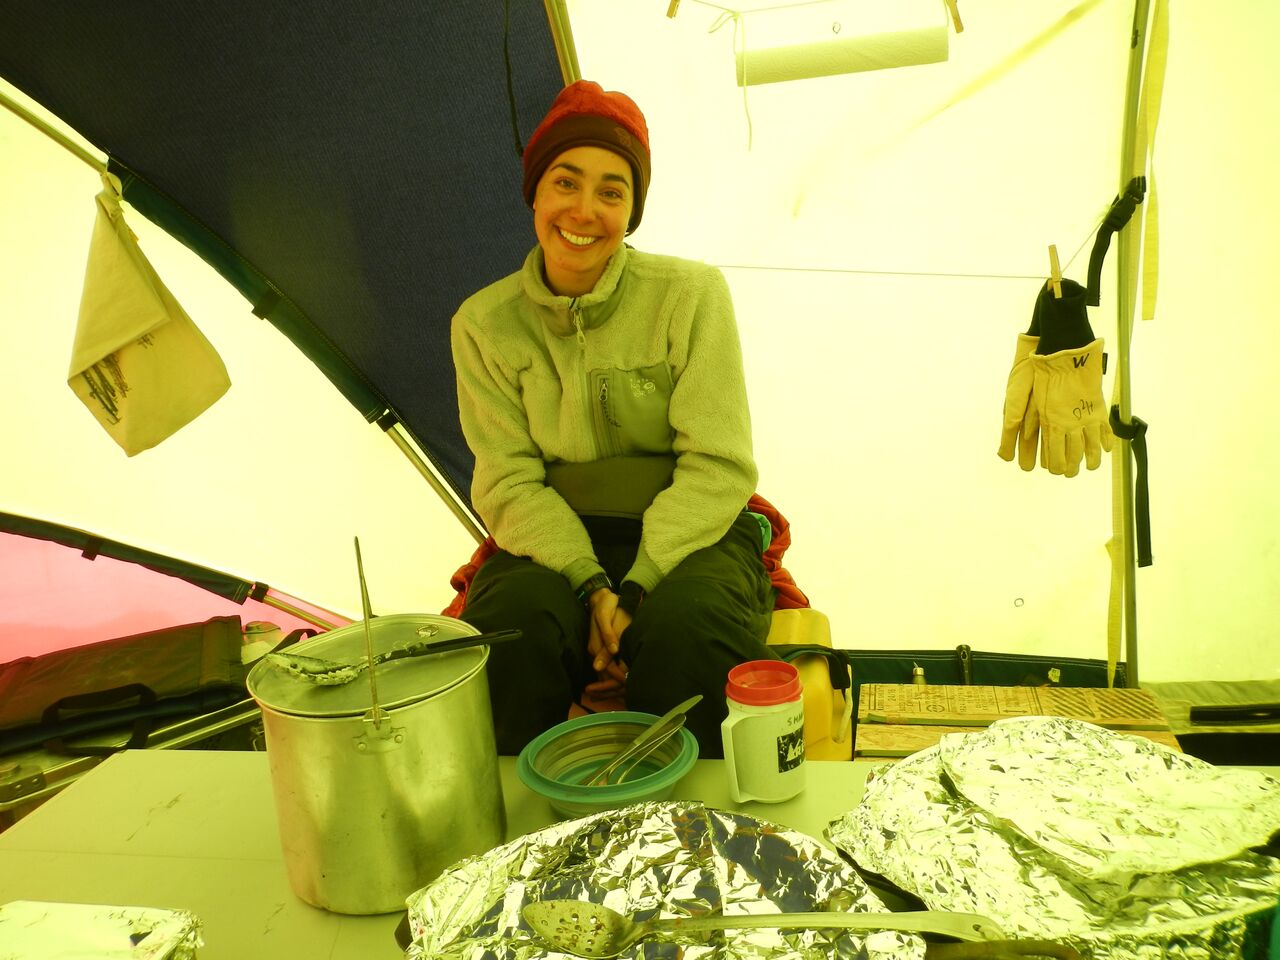 Graduate student Sarah Aarons relaxes in the cook tent on Taylor Glacier. (Photo by Sarah Aciego)